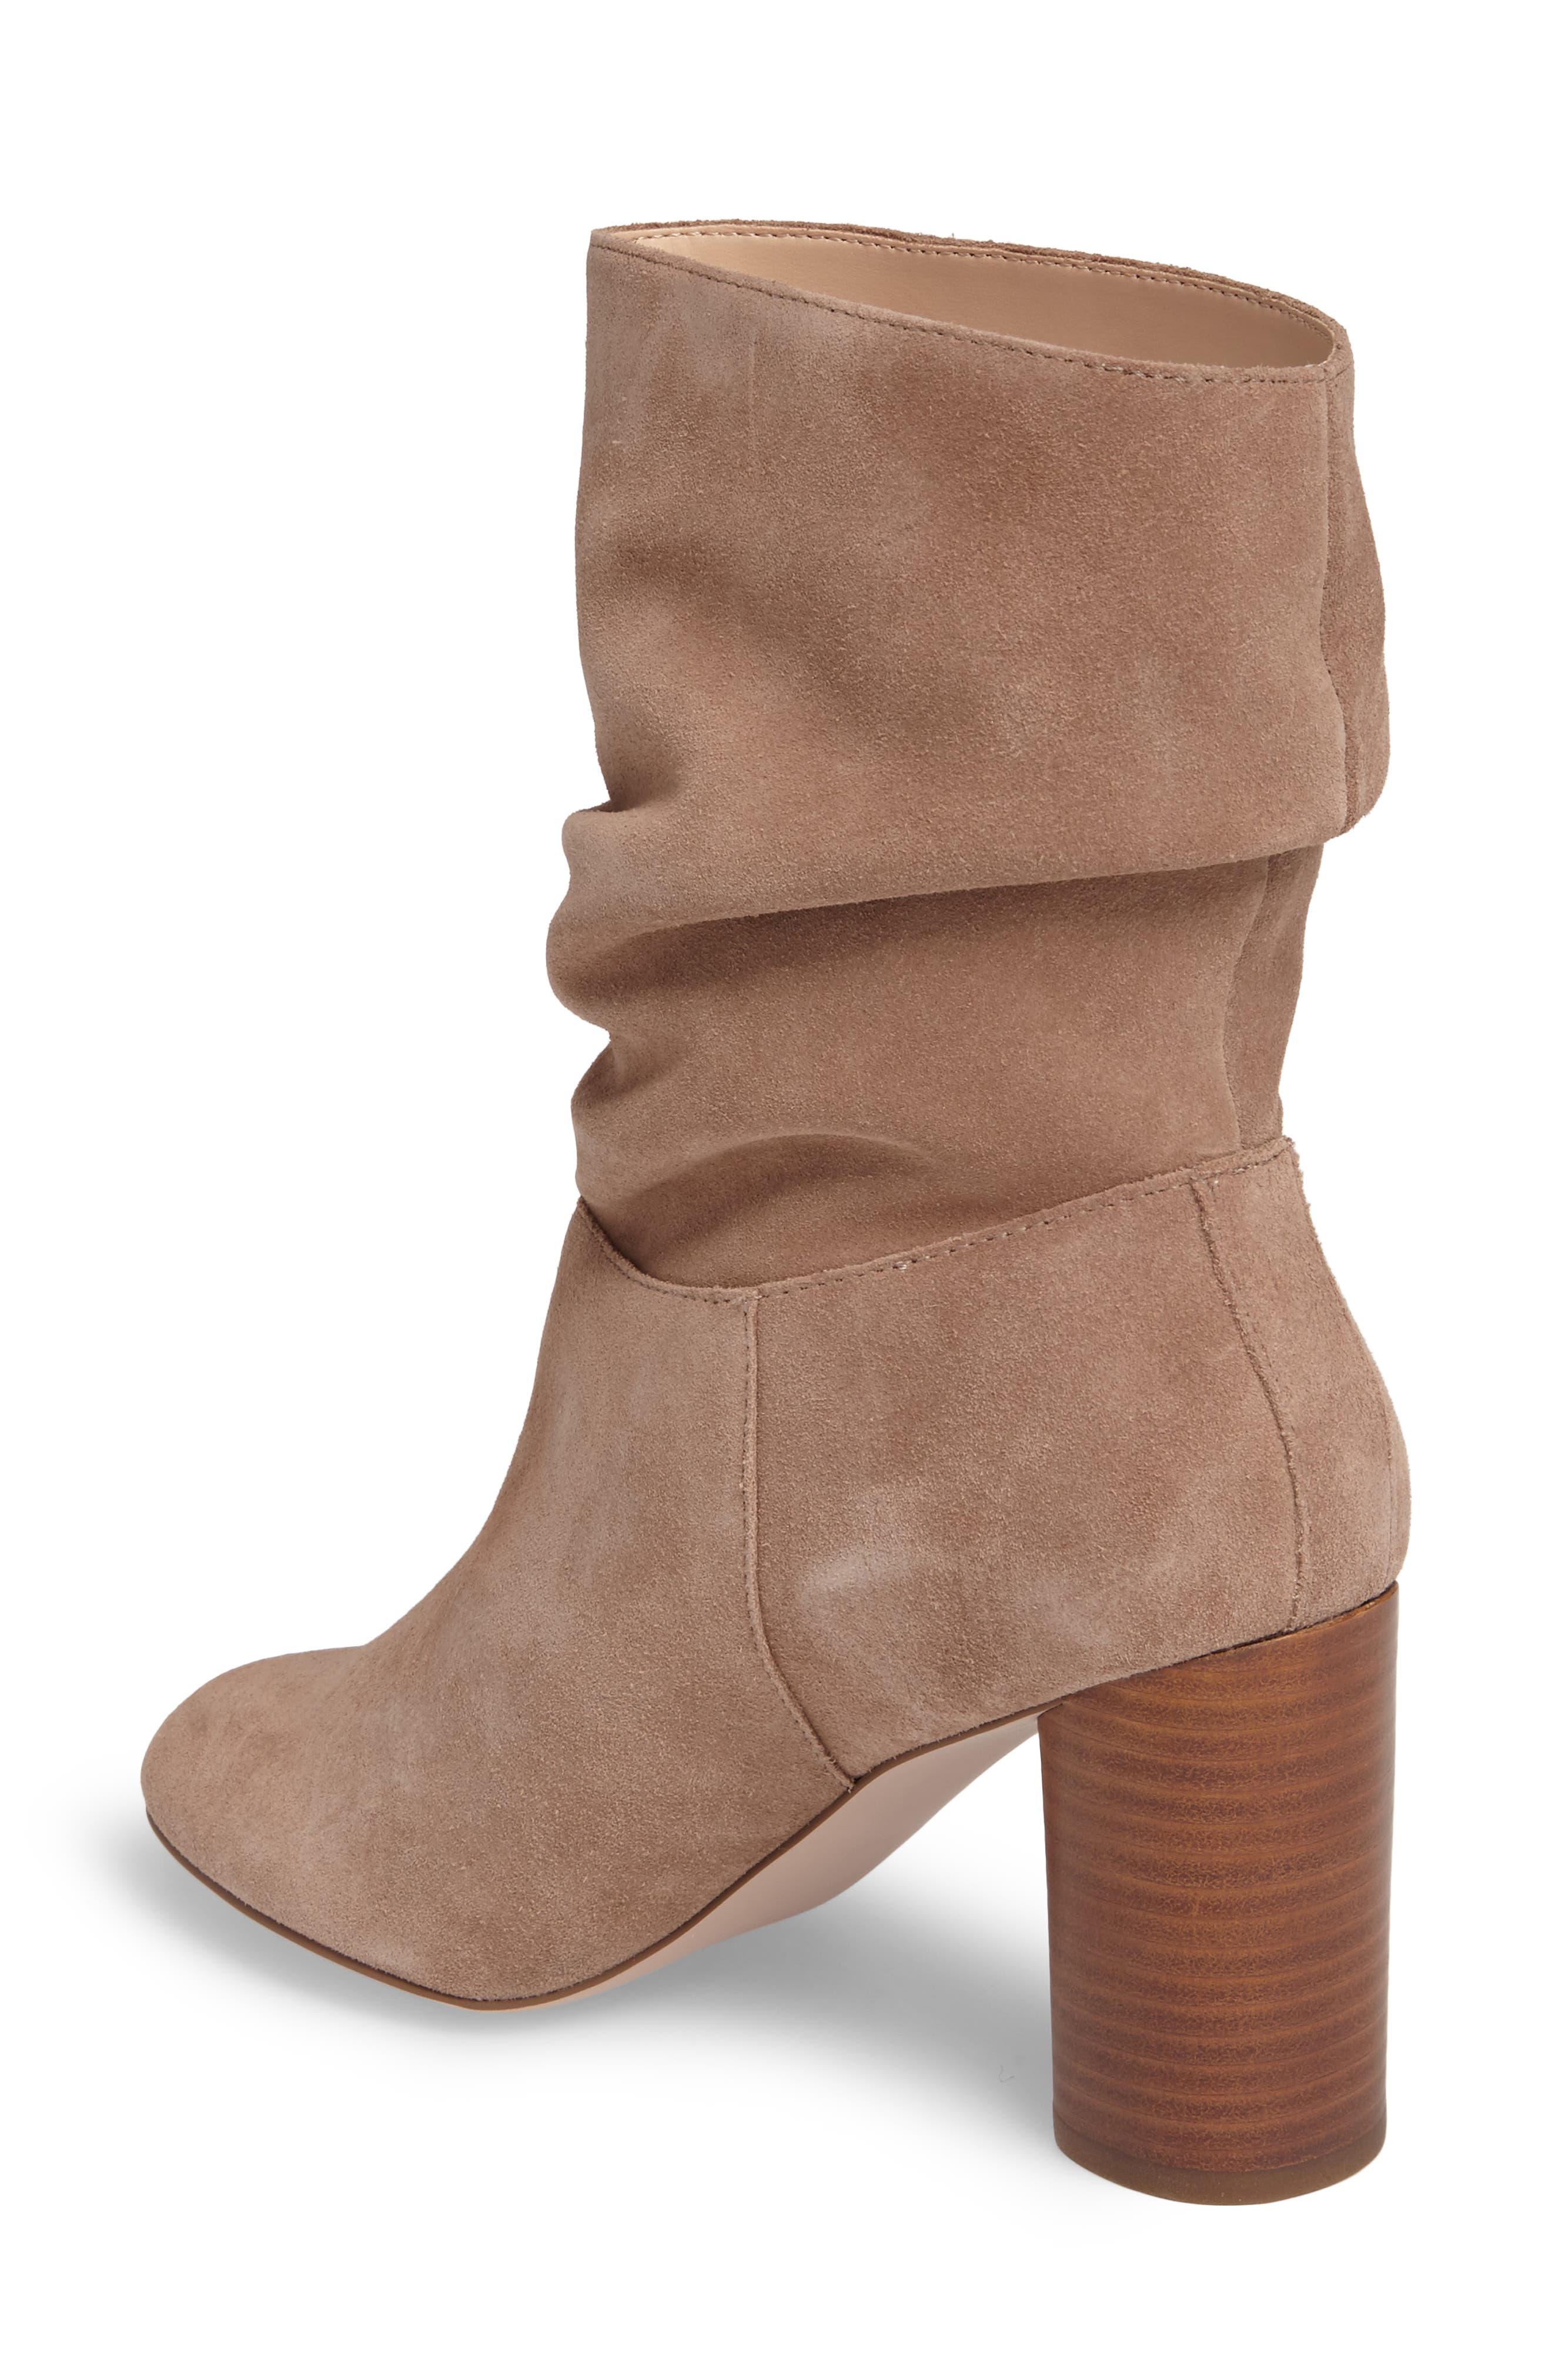 Belen Slouchy Bootie,                             Alternate thumbnail 2, color,                             Night Taupe